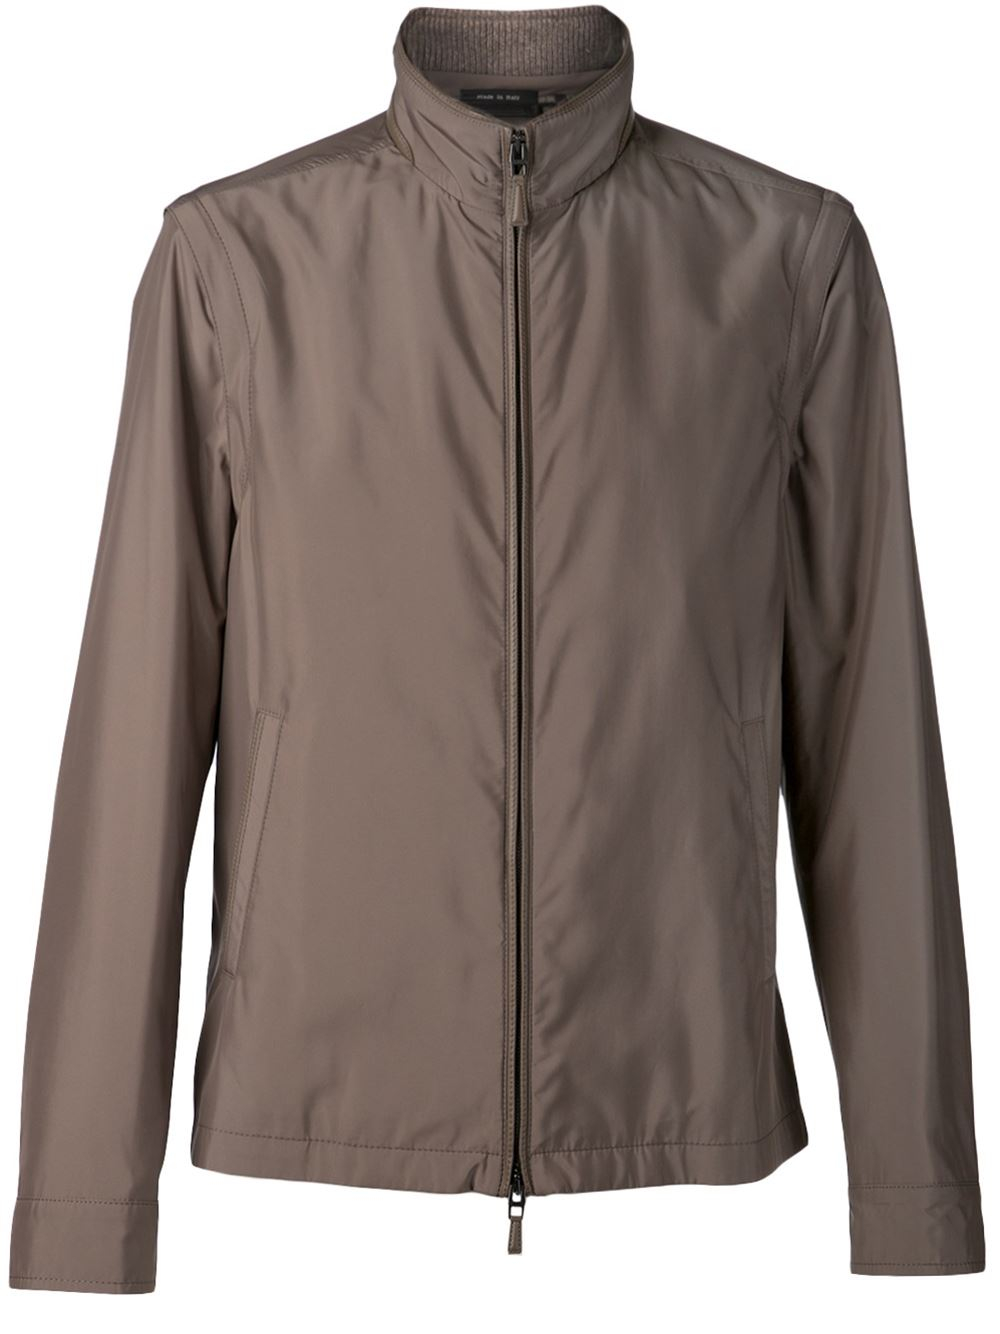 Shop for men's mens brown casual jacket online at Men's Wearhouse. Browse the latest mens brown casual jacket styles & selection from xianggangdishini.gq, the leader in men's apparel. FREE Shipping on orders $99+!